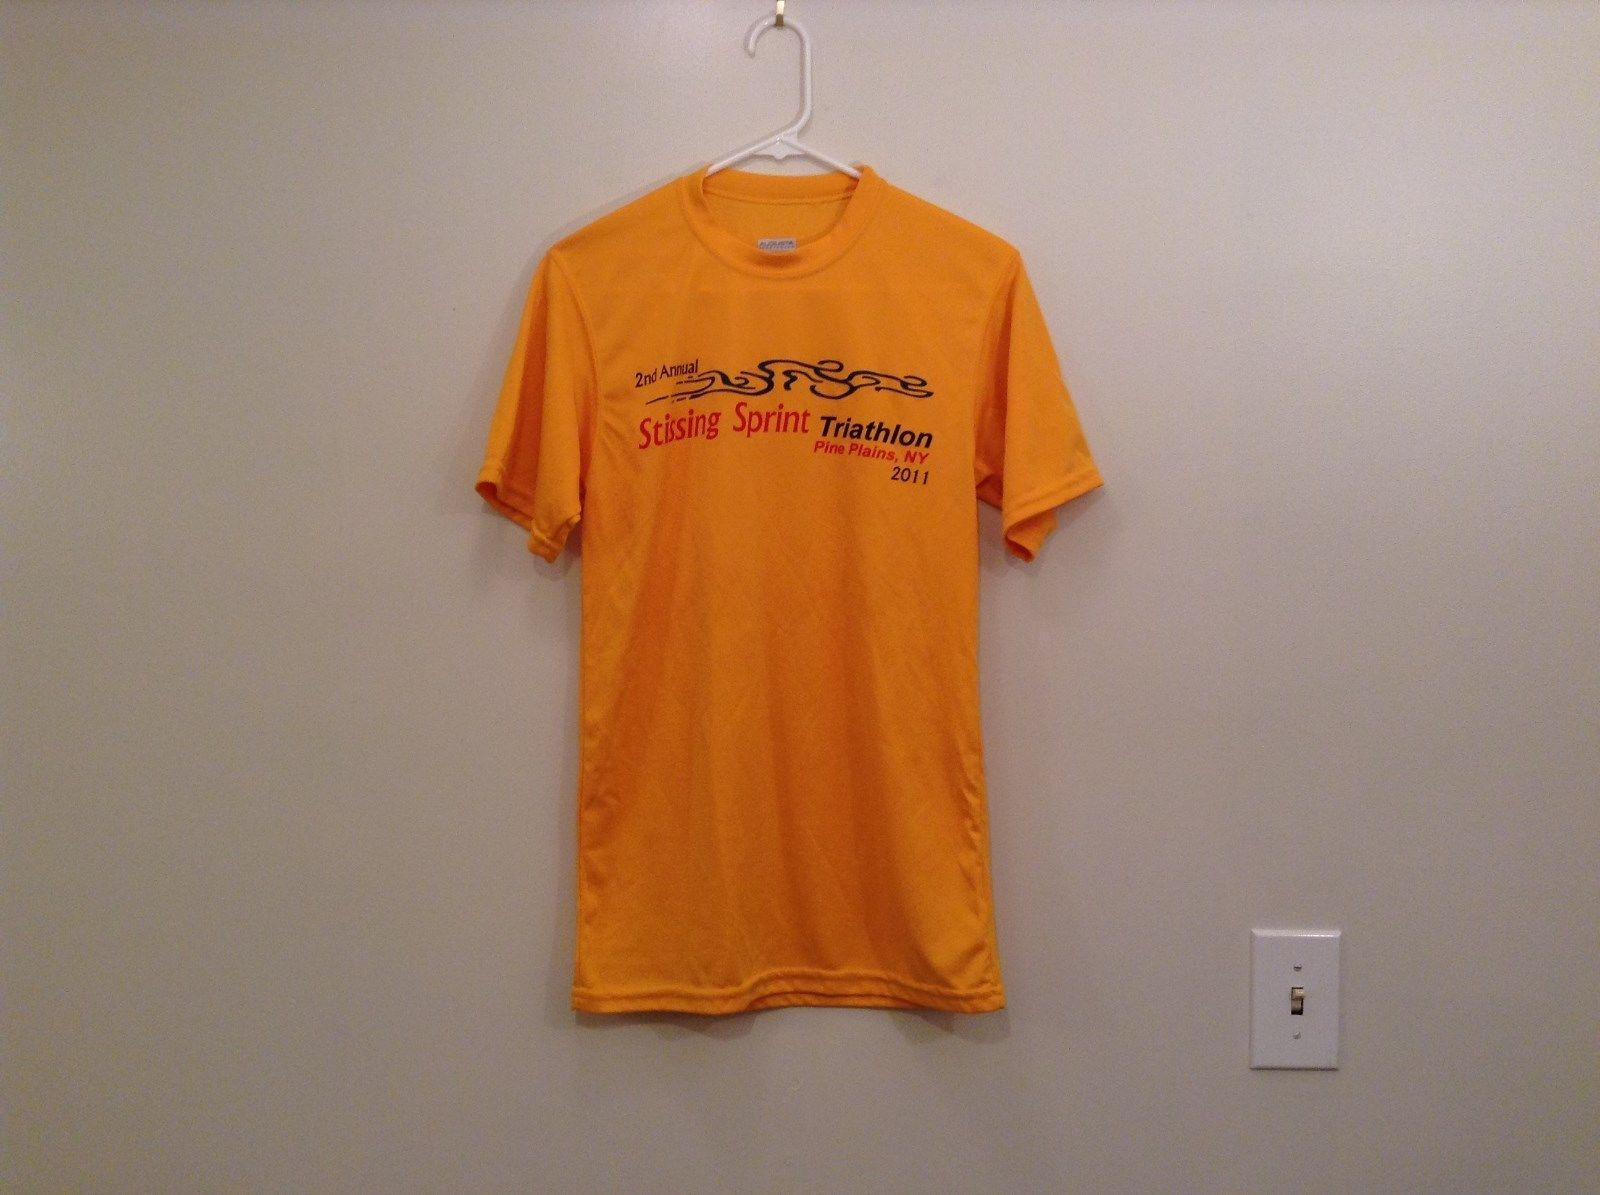 Yellow Team Graphic T Shirt 2nd Annual Stissing Sprint Triathlon 2011 Size S